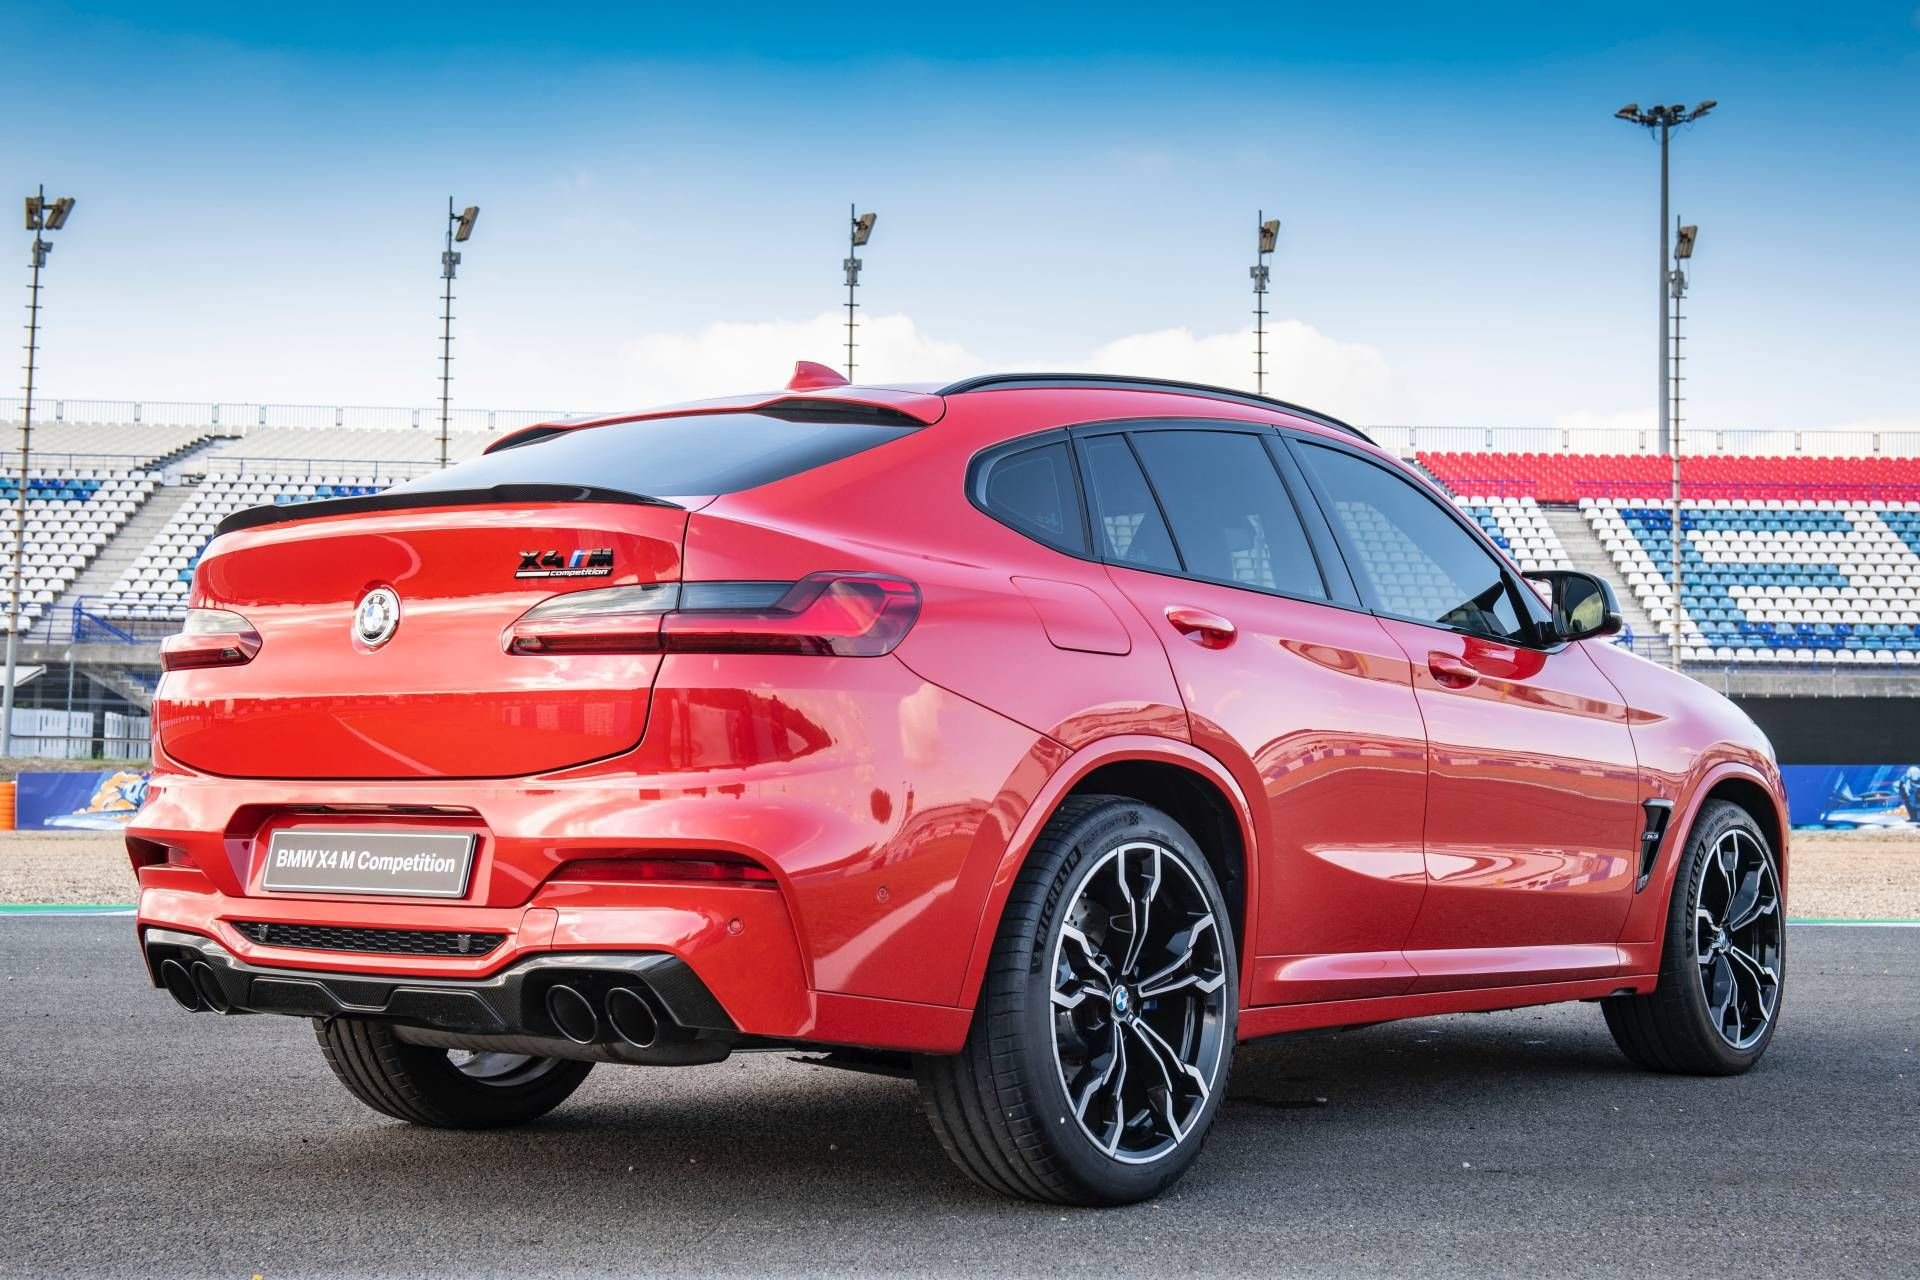 2020 Bmw X4 M Competition With Images Bmw Bmw X4 Competition